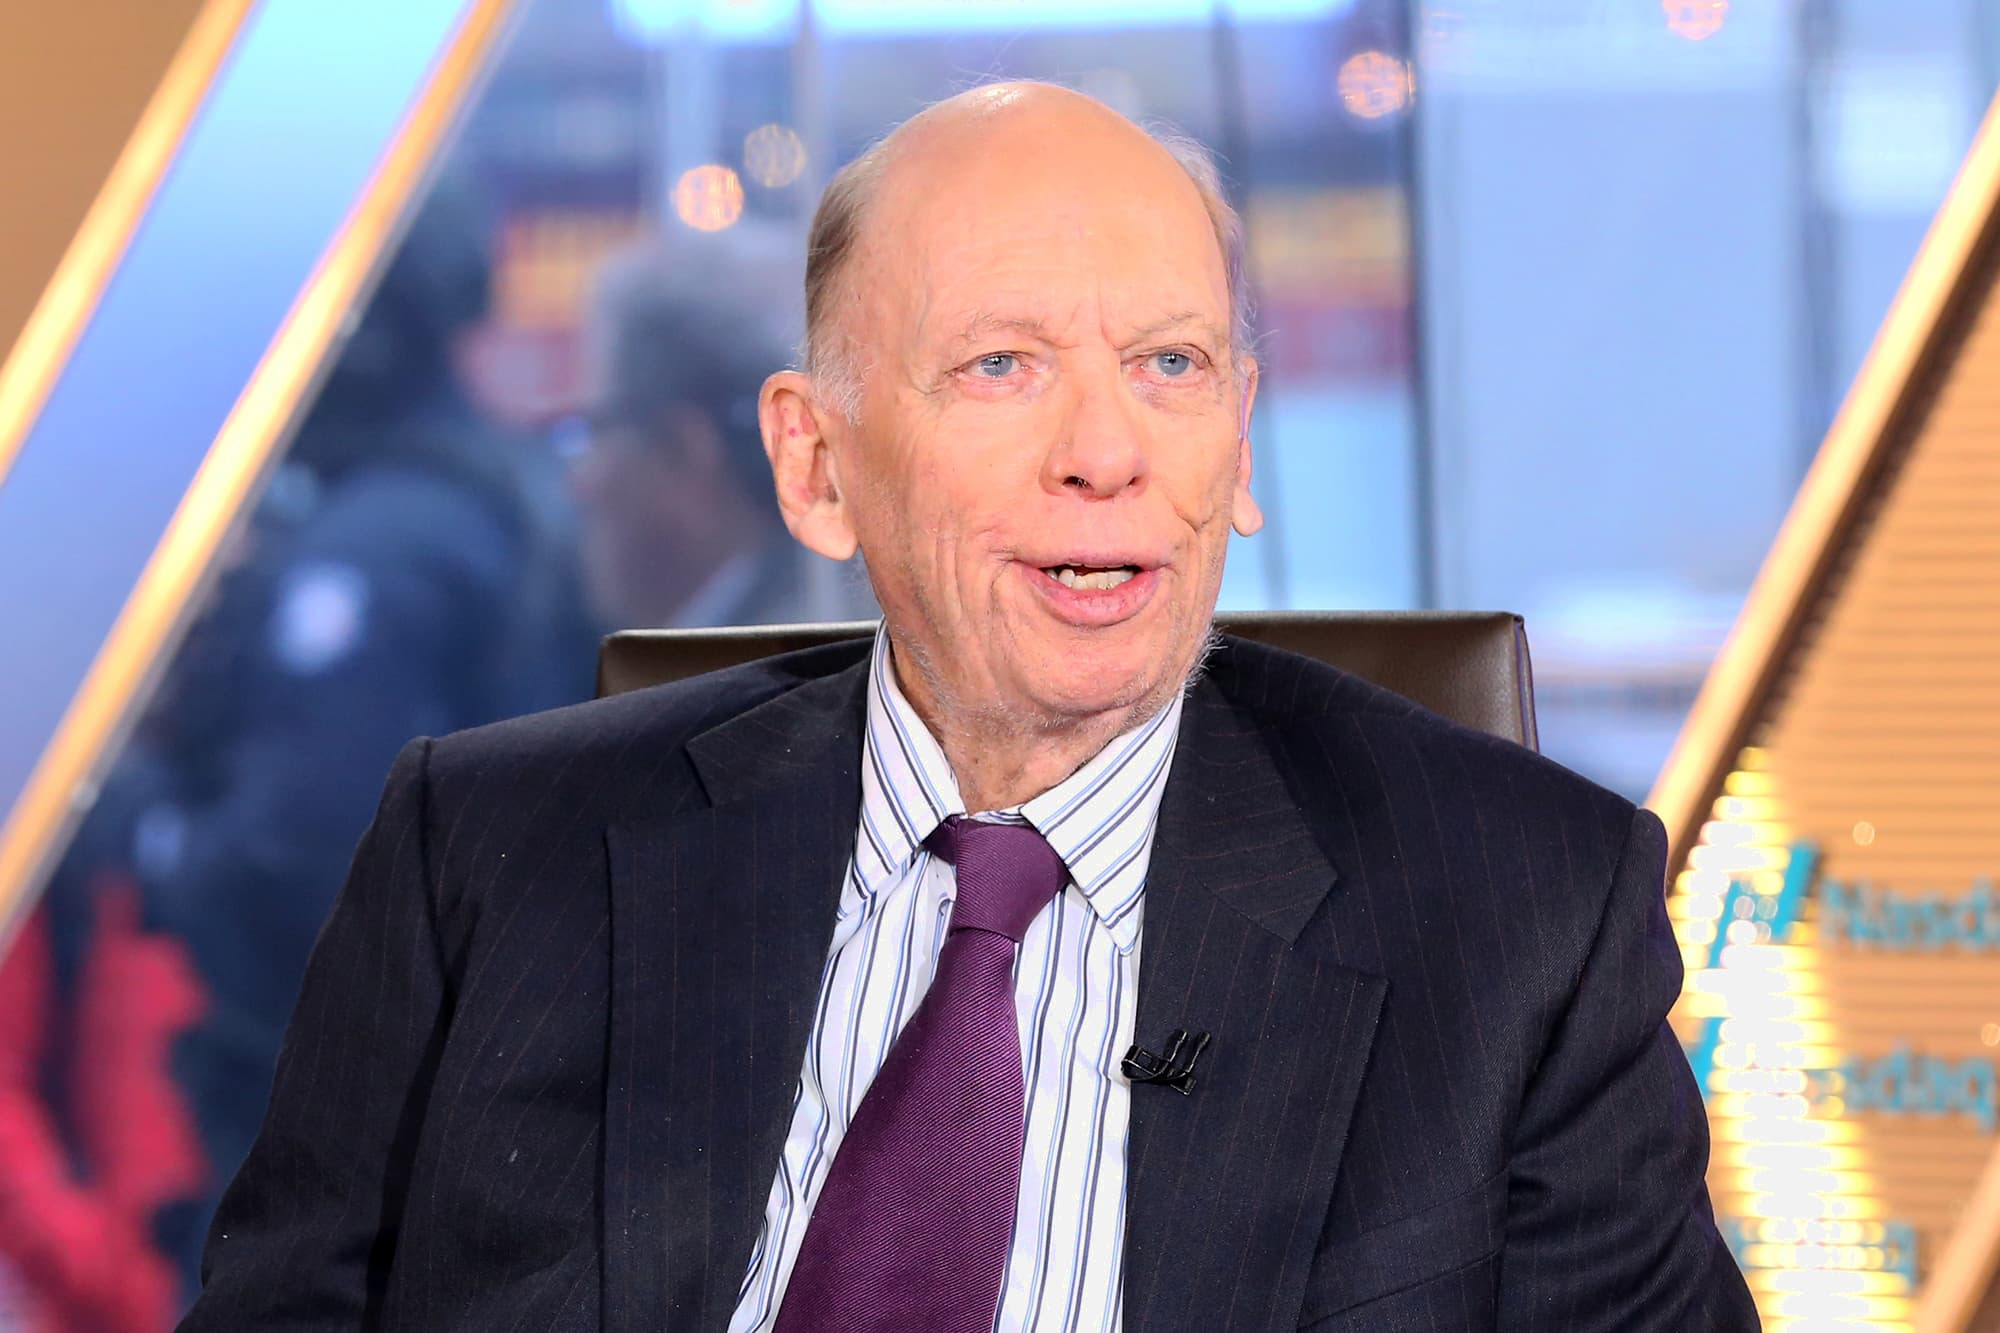 Blackstone's Byron Wien sees 3 things keeping the stock market rally going in 2020